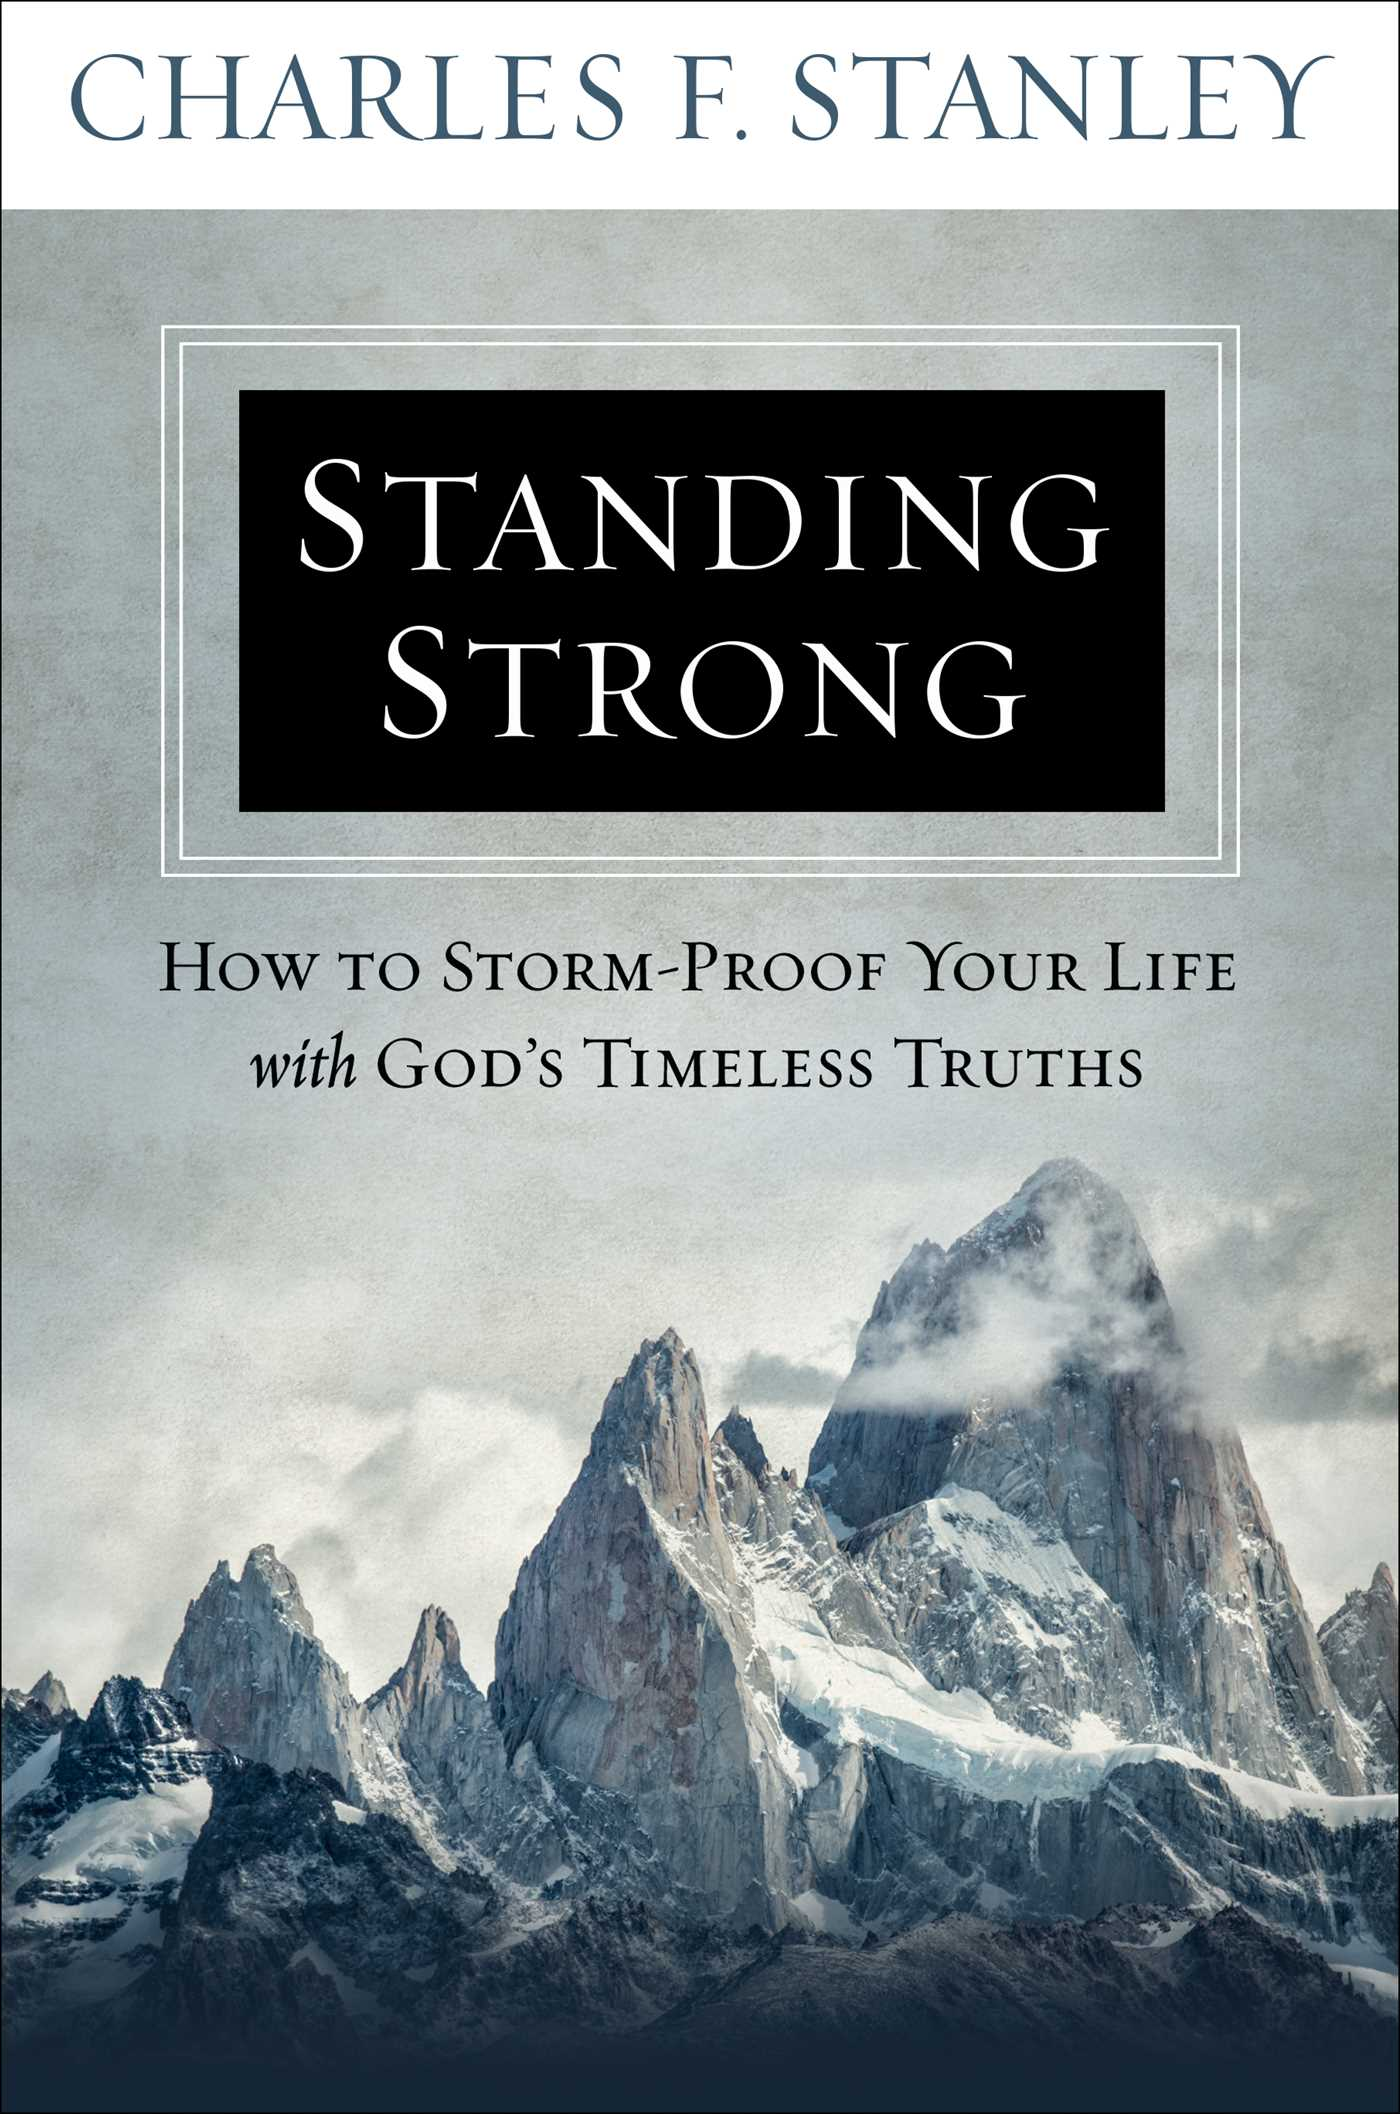 Standing strong 9781501177392 hr